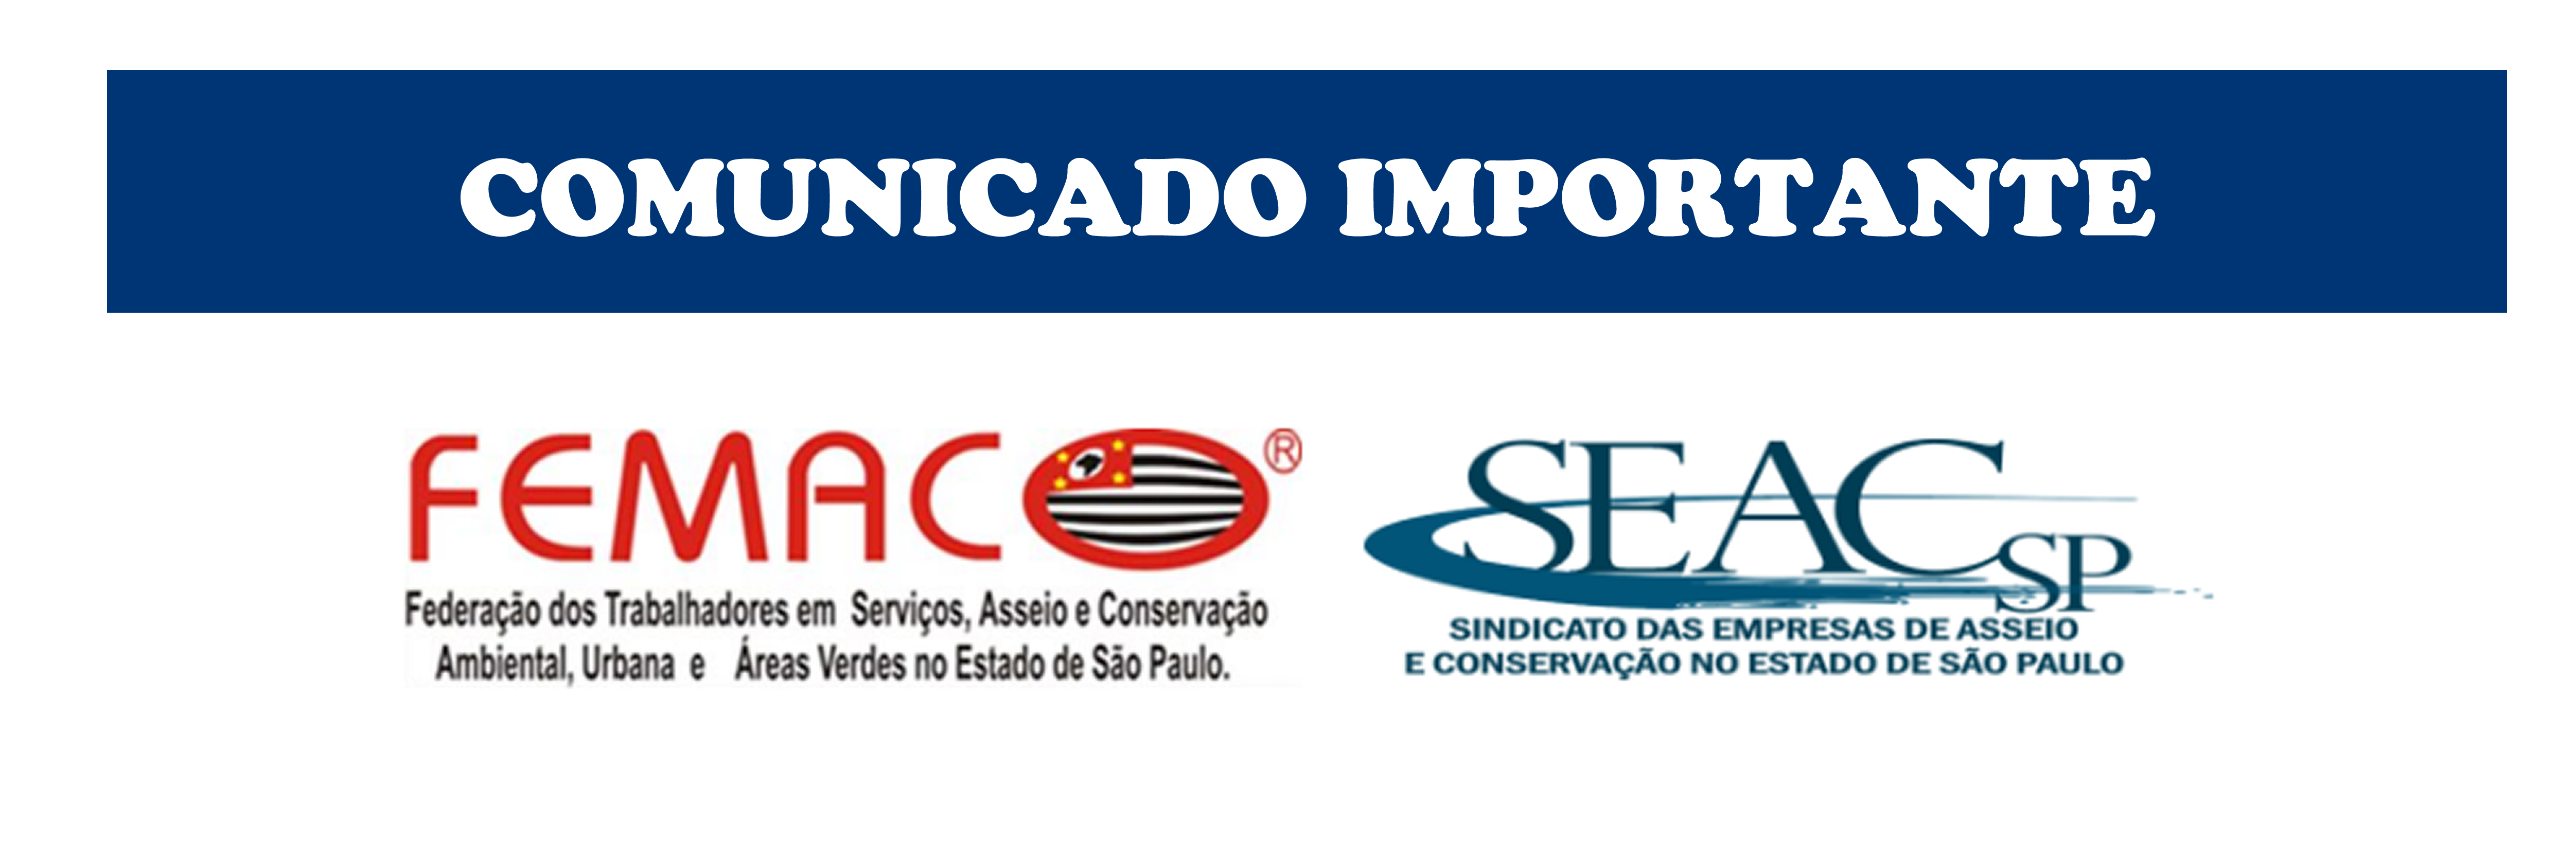 COMUNICADO_IMPORTANTE_FEMACOxSEAC